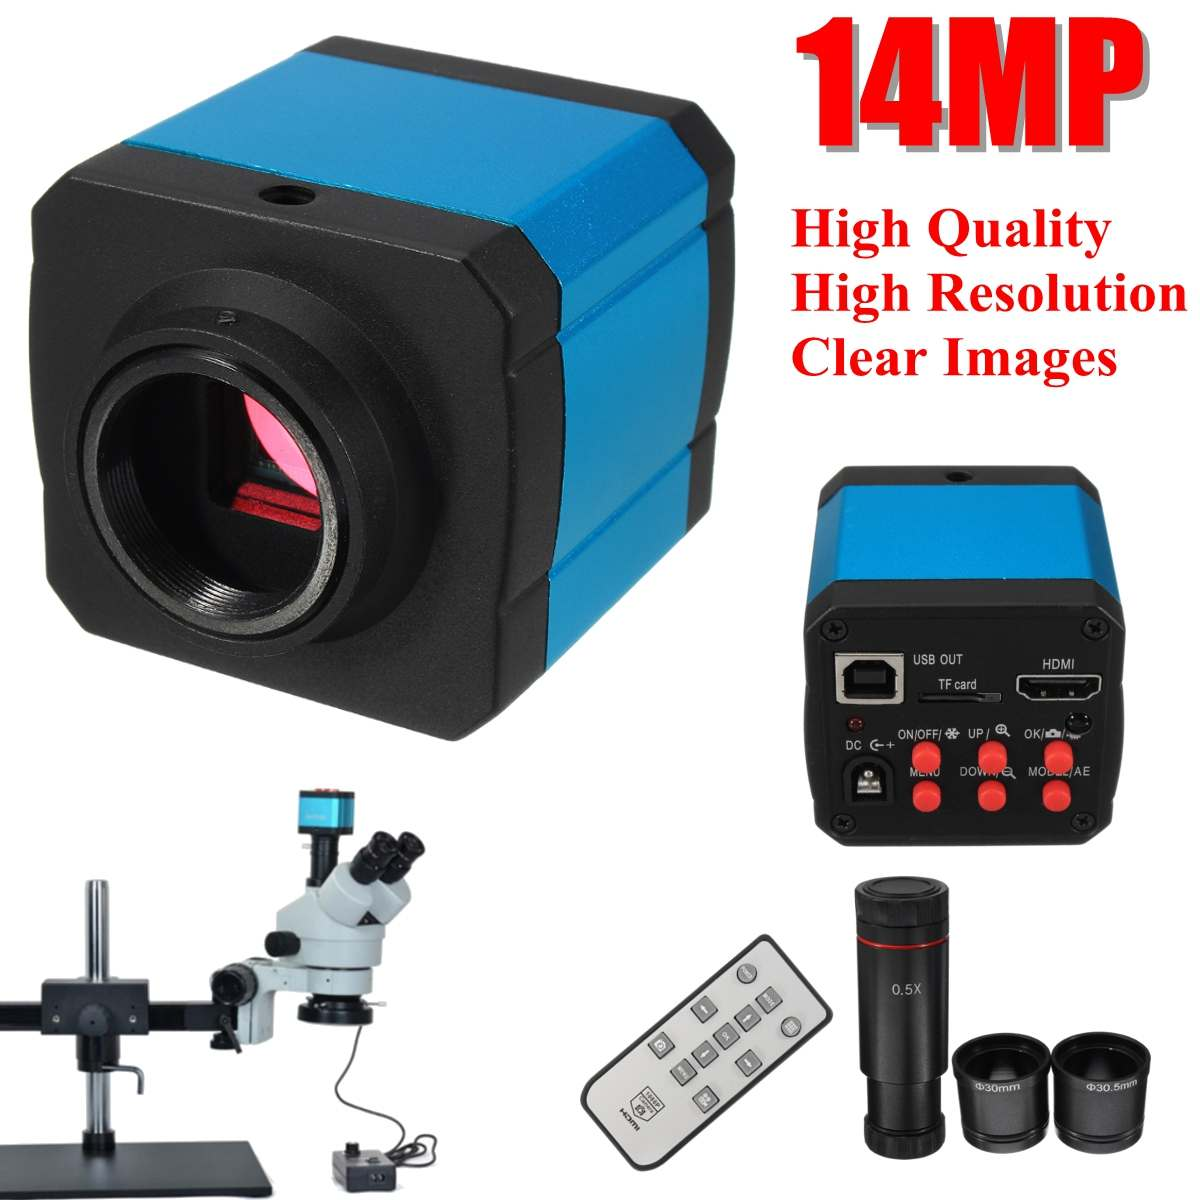 14MP 1080P Industry USB Stereo Microscope Camera with Eyepiece Lens Ad ter for Microelectronics Jewelry Phone Maintenance